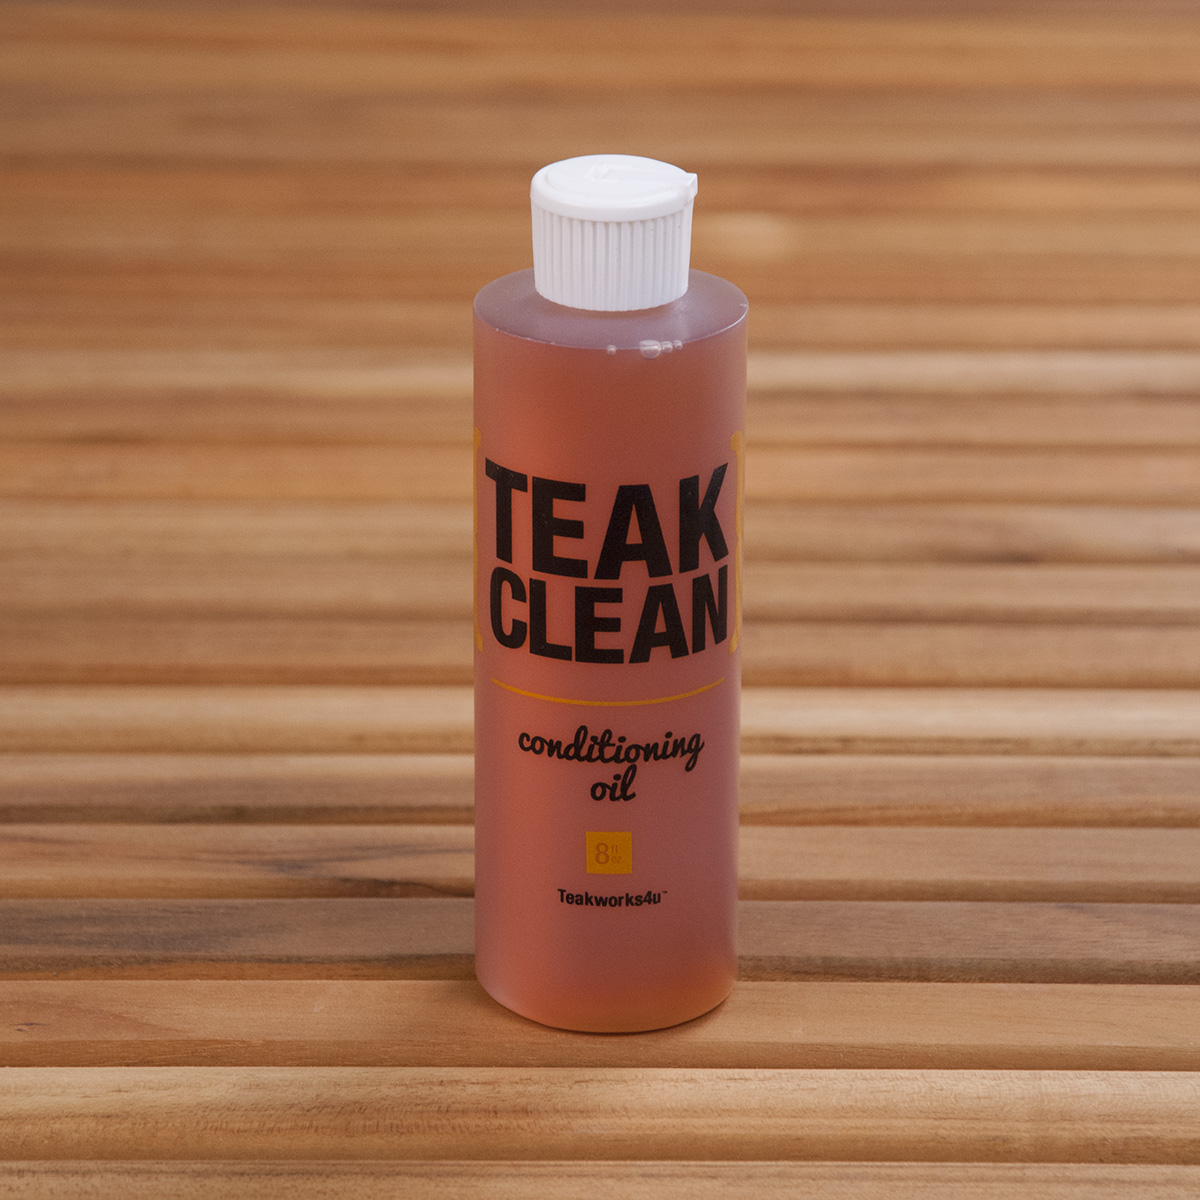 Teak Clean - Teak Conditioning Oil (8oz.)